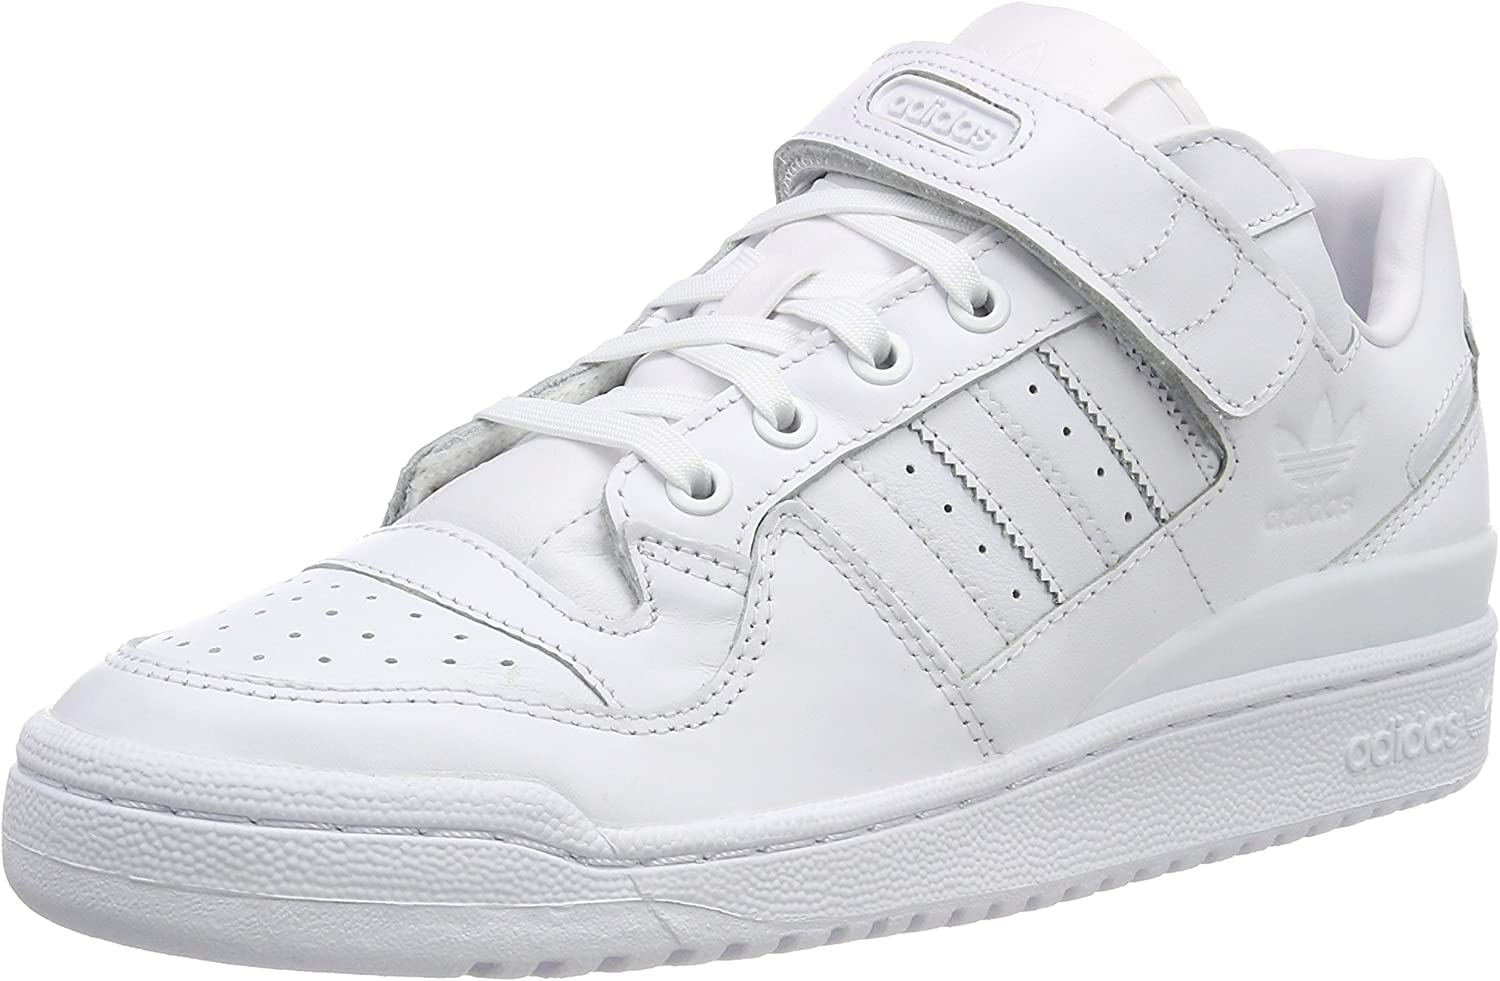 Adidas Men's Forum Lo Refined Fitness shoes